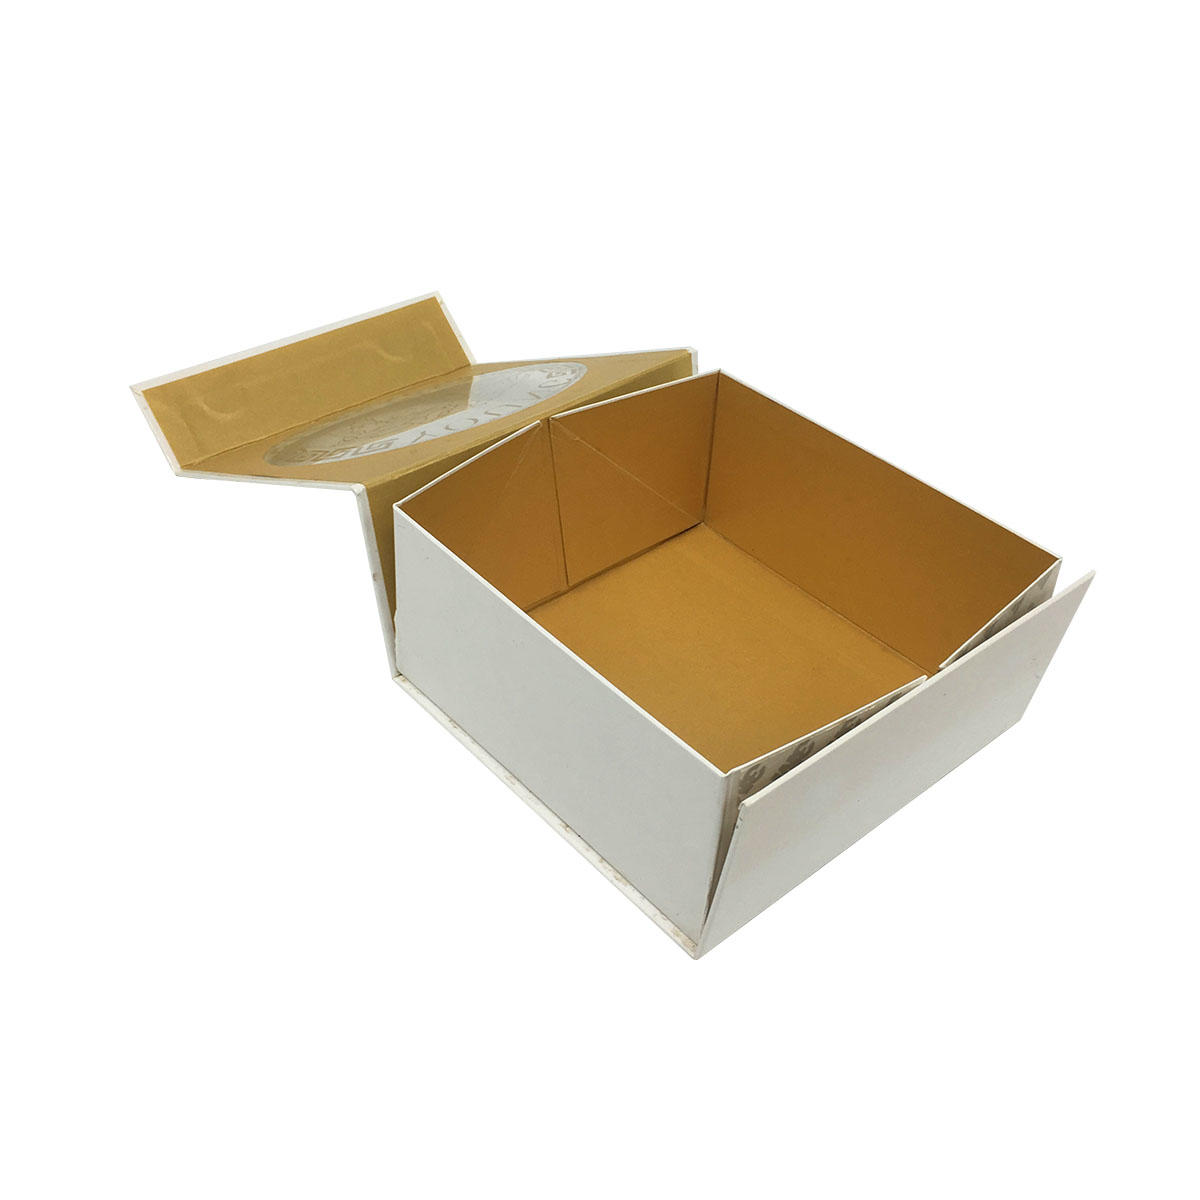 New custom design foldable cosmetic sample packaging white box packaging with PVC window